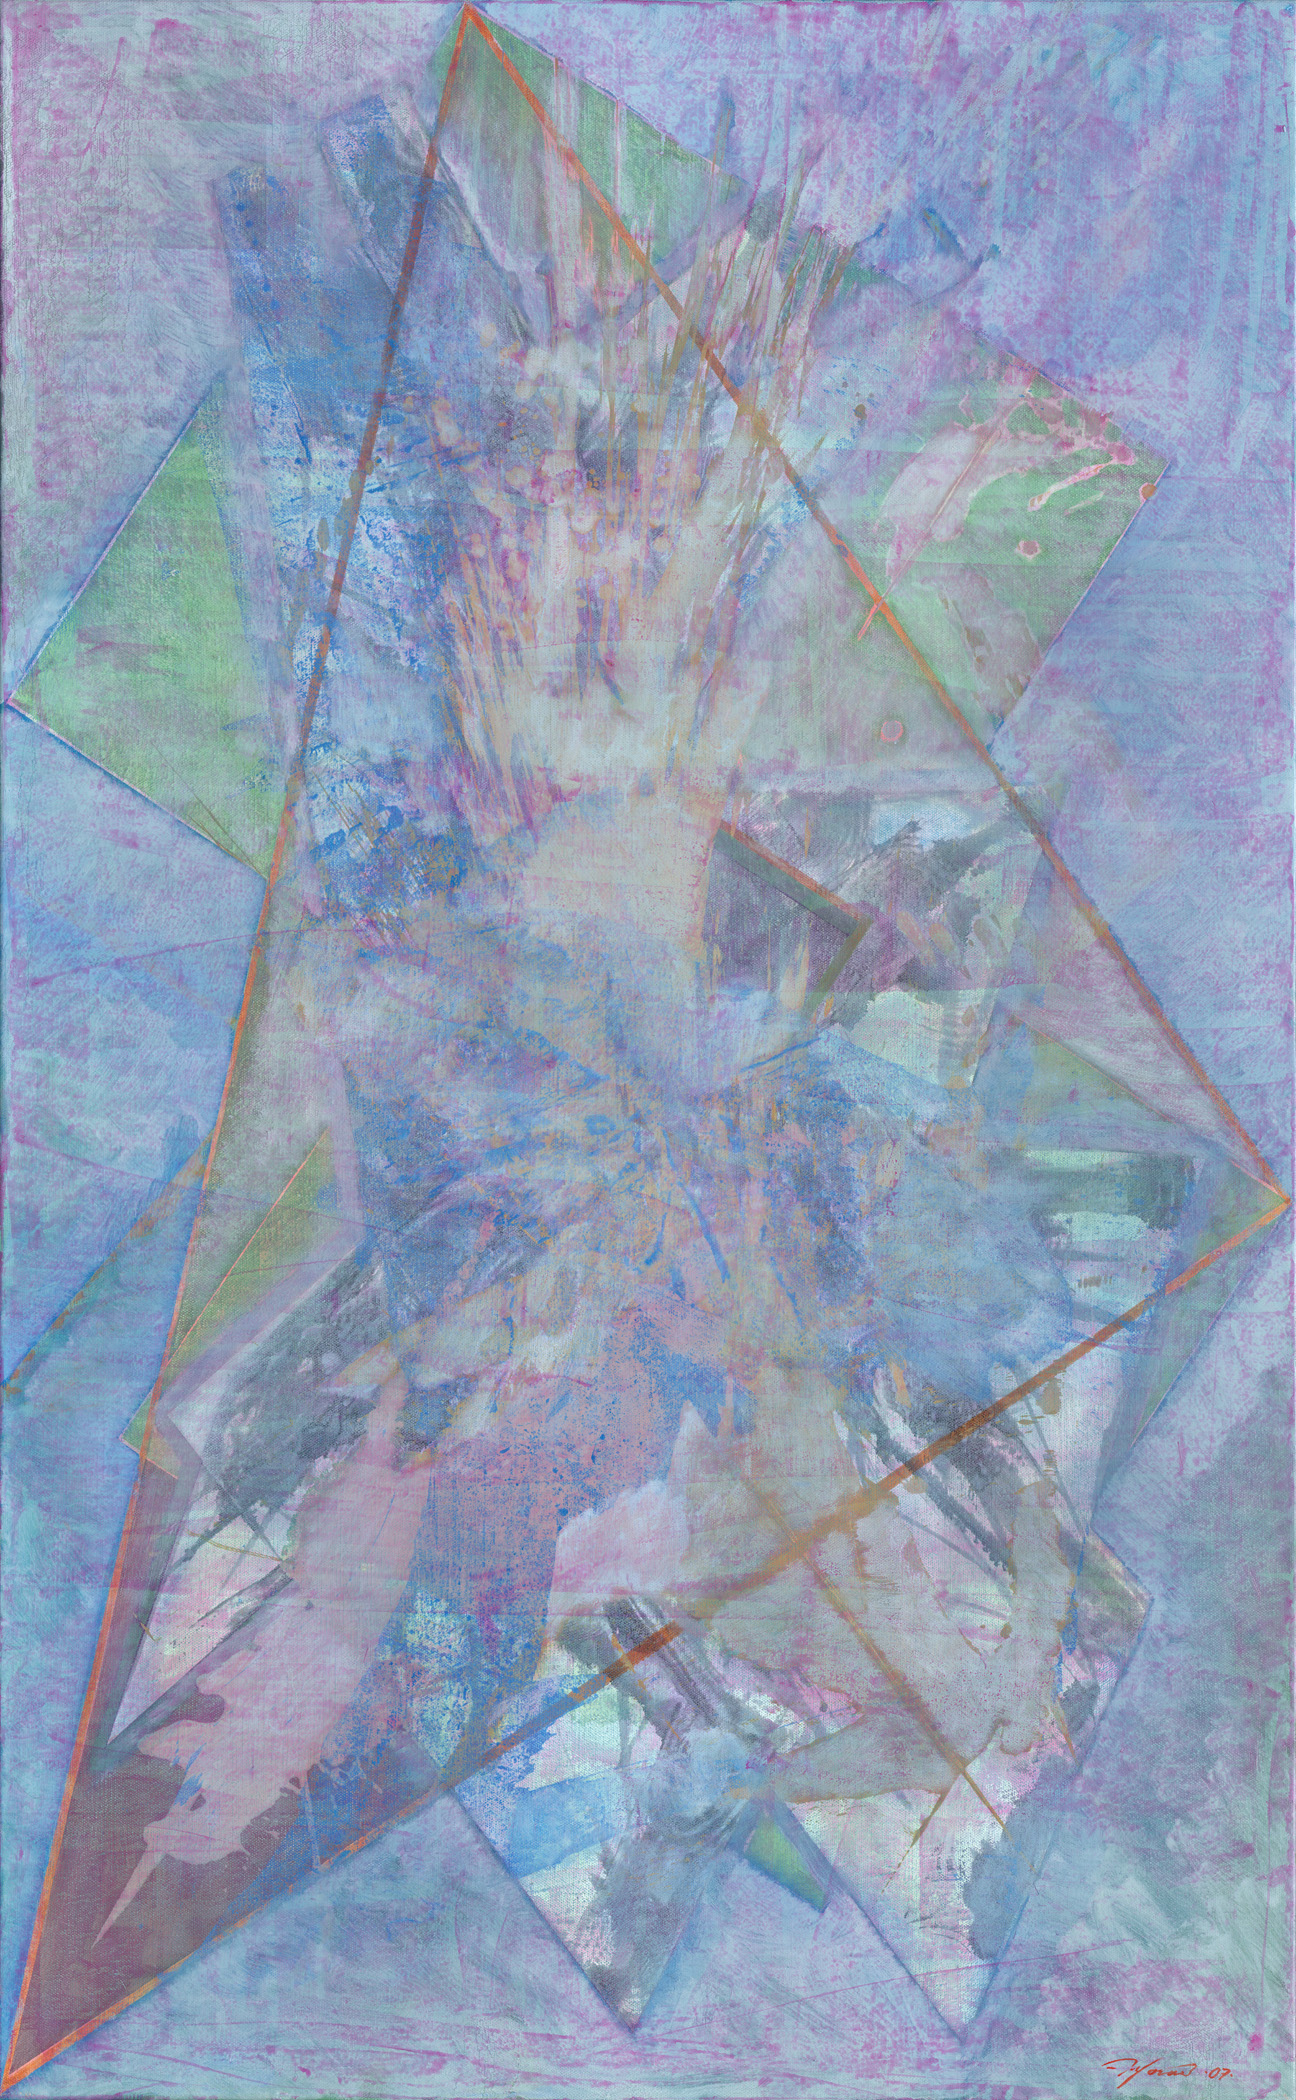 Triangulation Series #25-- oil on linen, 60 x 37 inches, 2009